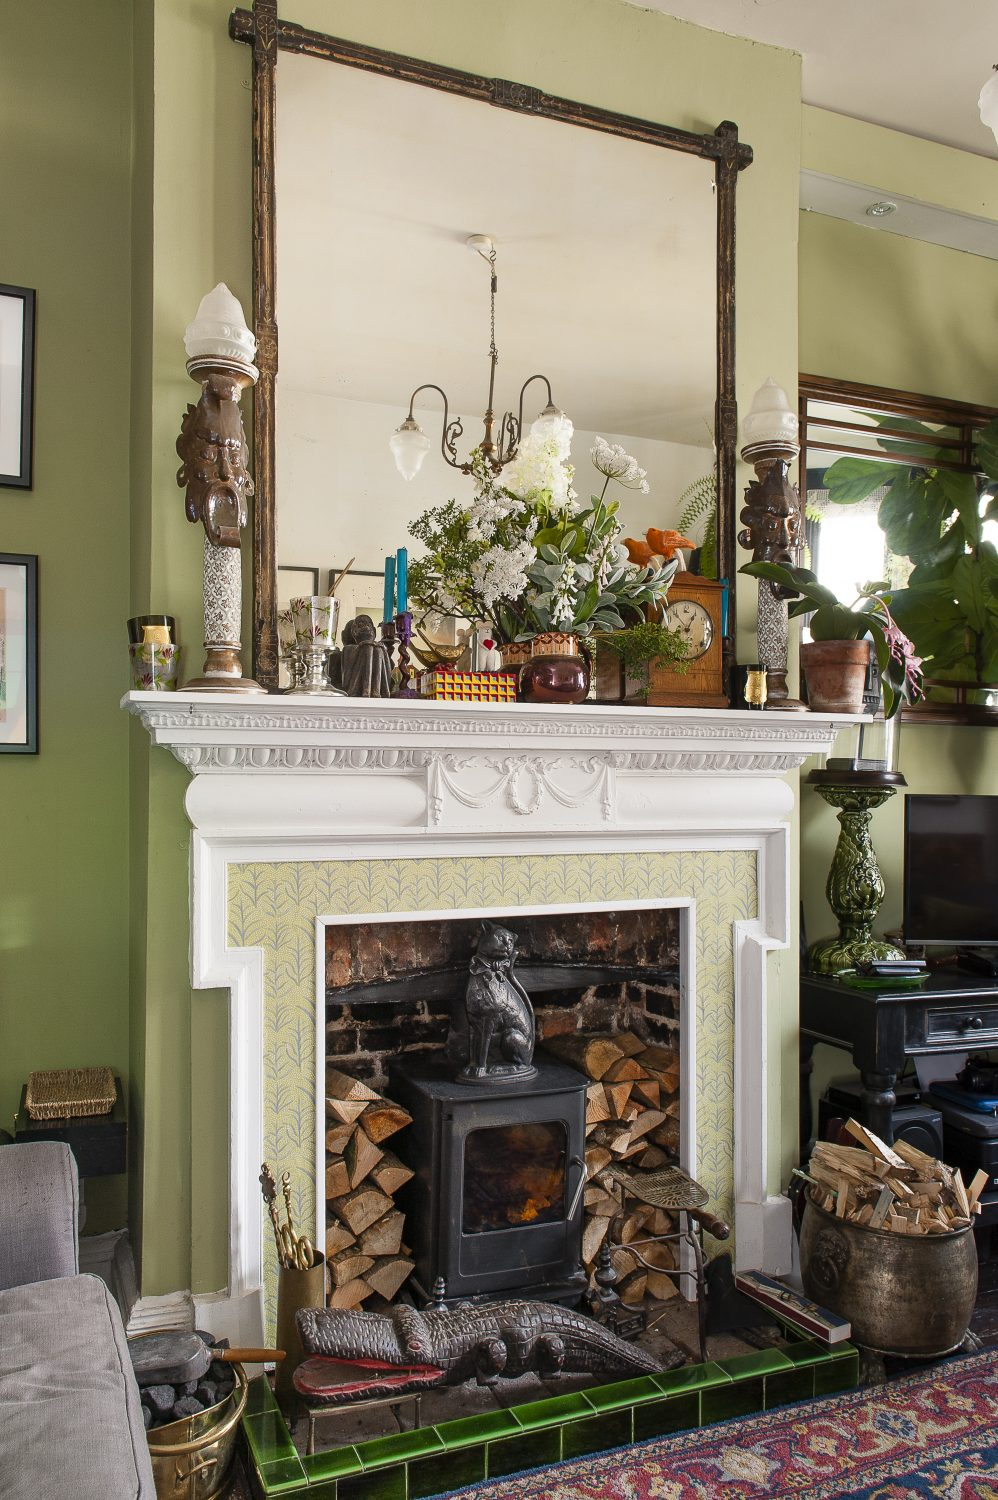 The impressive fireplace in the sitting room was an Ebay find, the surround wallpapered instead of tiled using paper from Vintage Bird